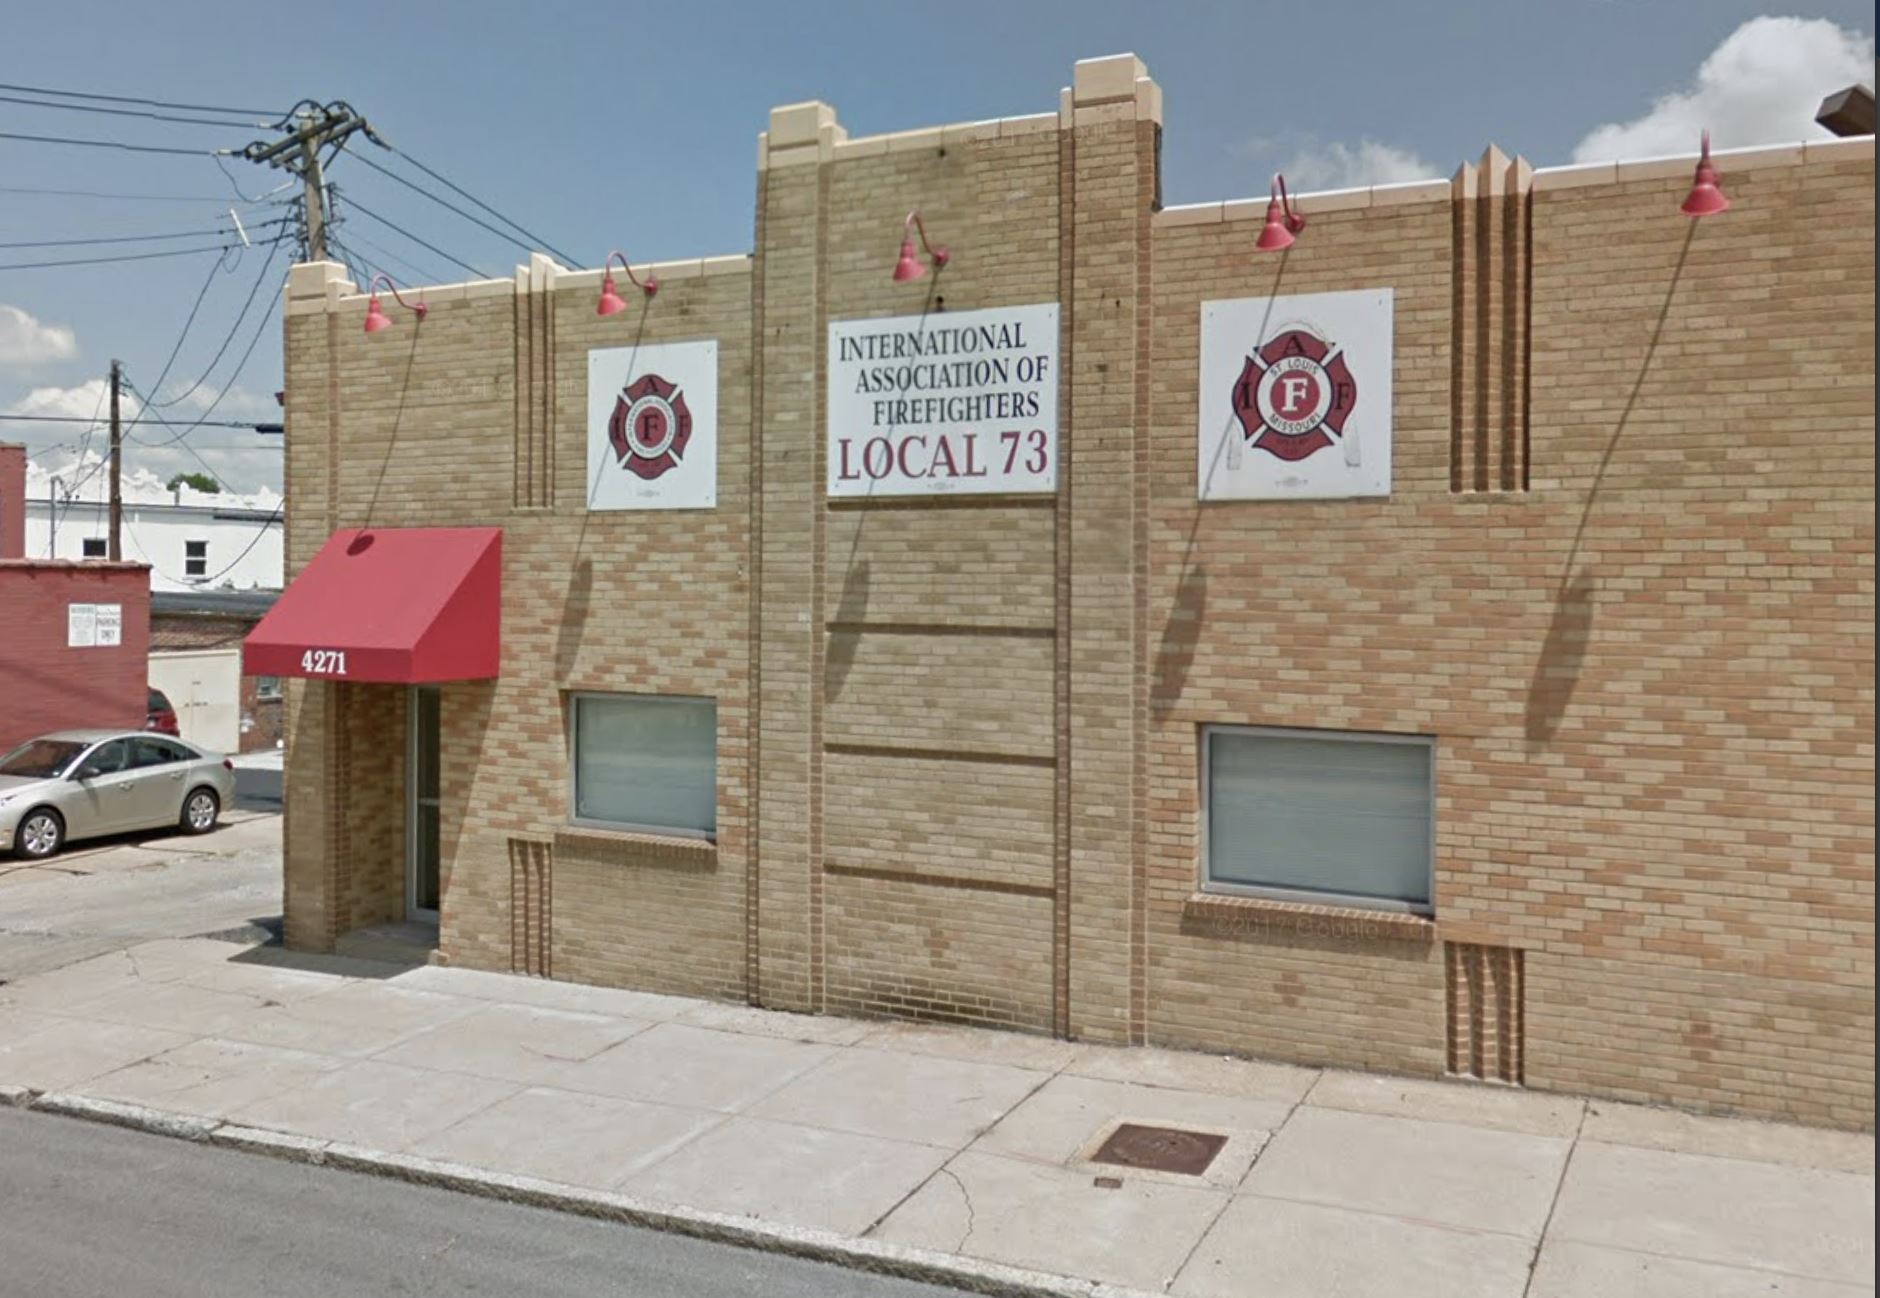 Local 73 Firefighter's Hall